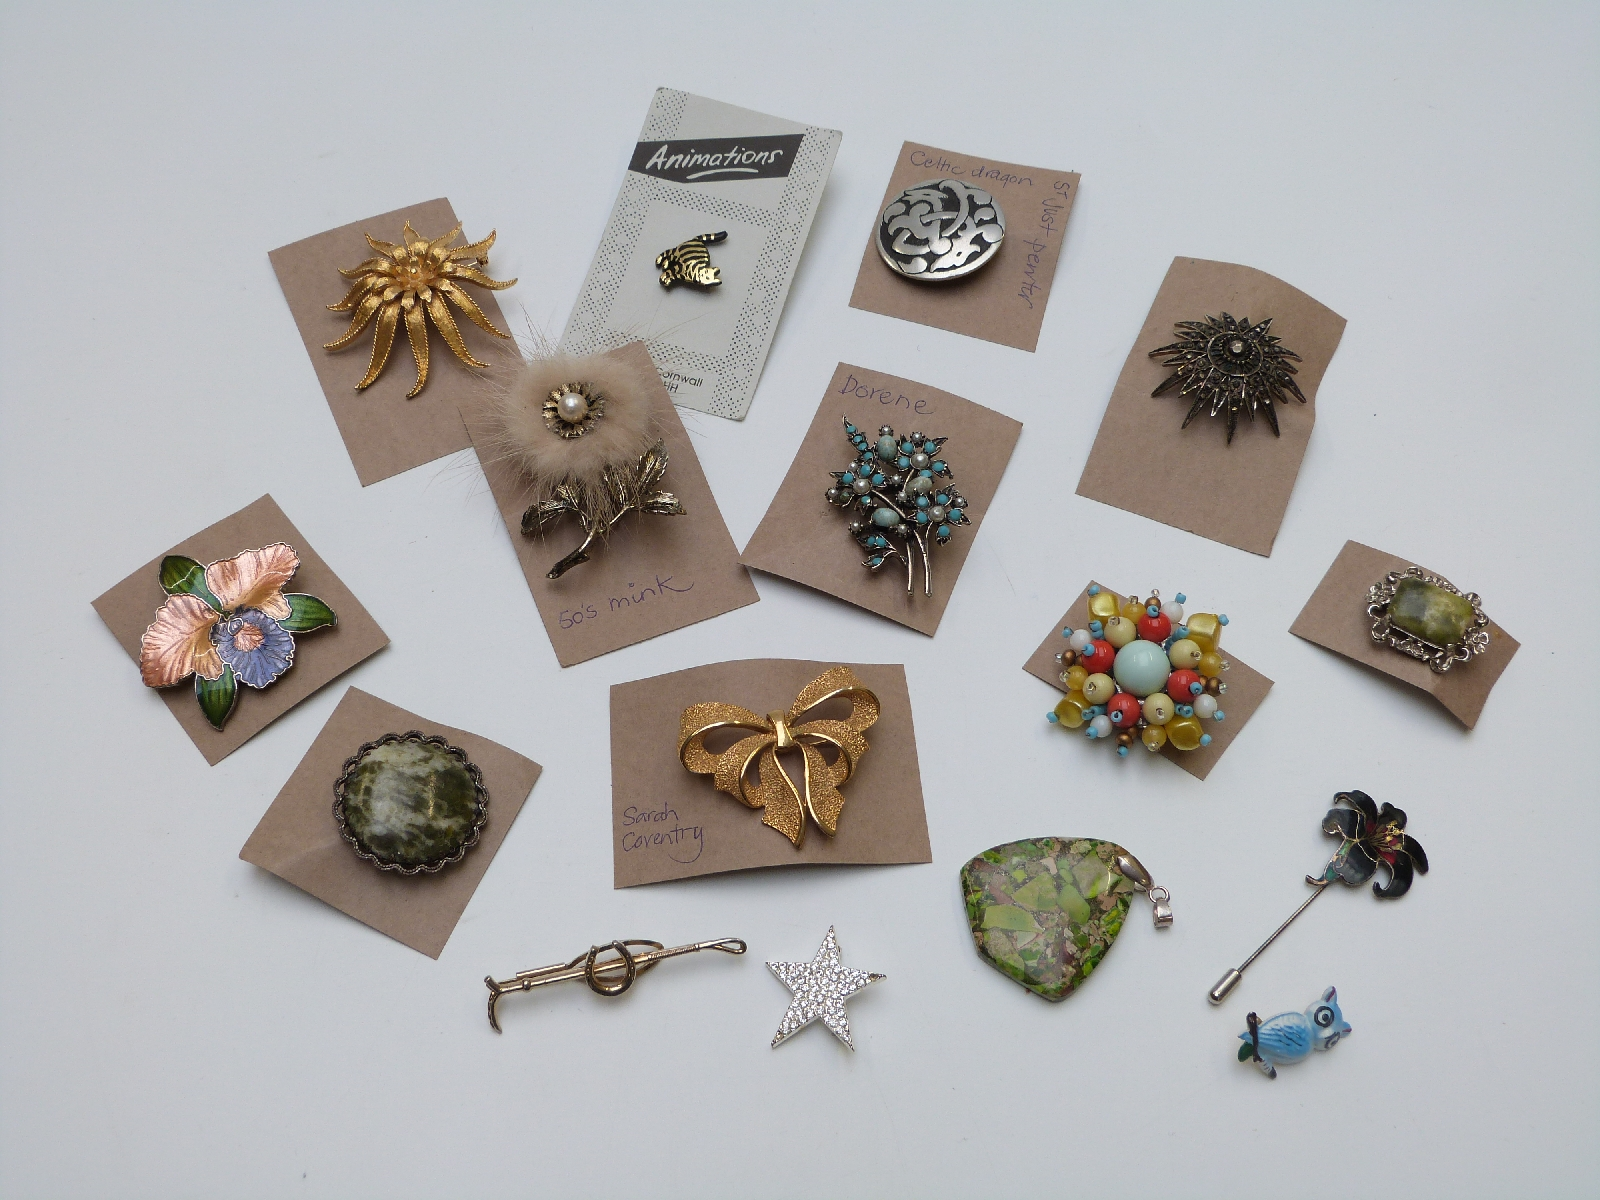 Lot 17 - A collection of costume jewellery including agate bangle, agate bracelet, vintage brooches including